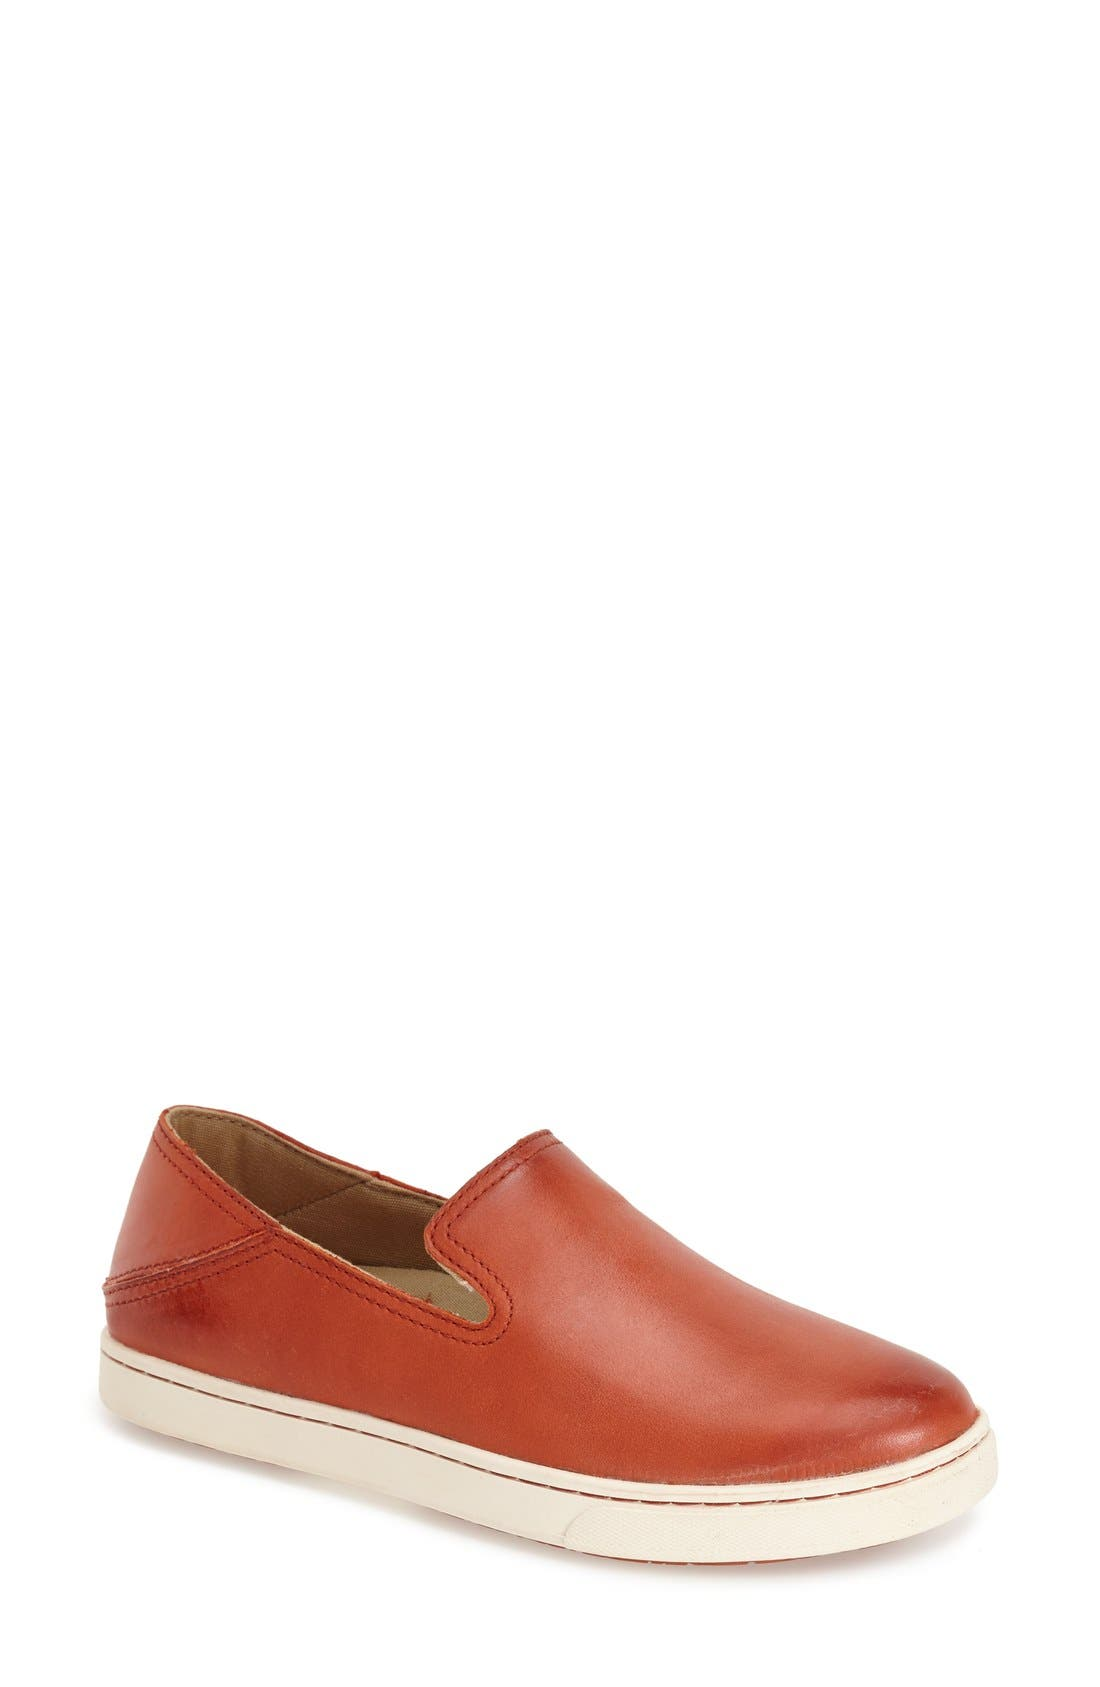 OluKai 'Kailua' Slip-On Sneaker (Women)